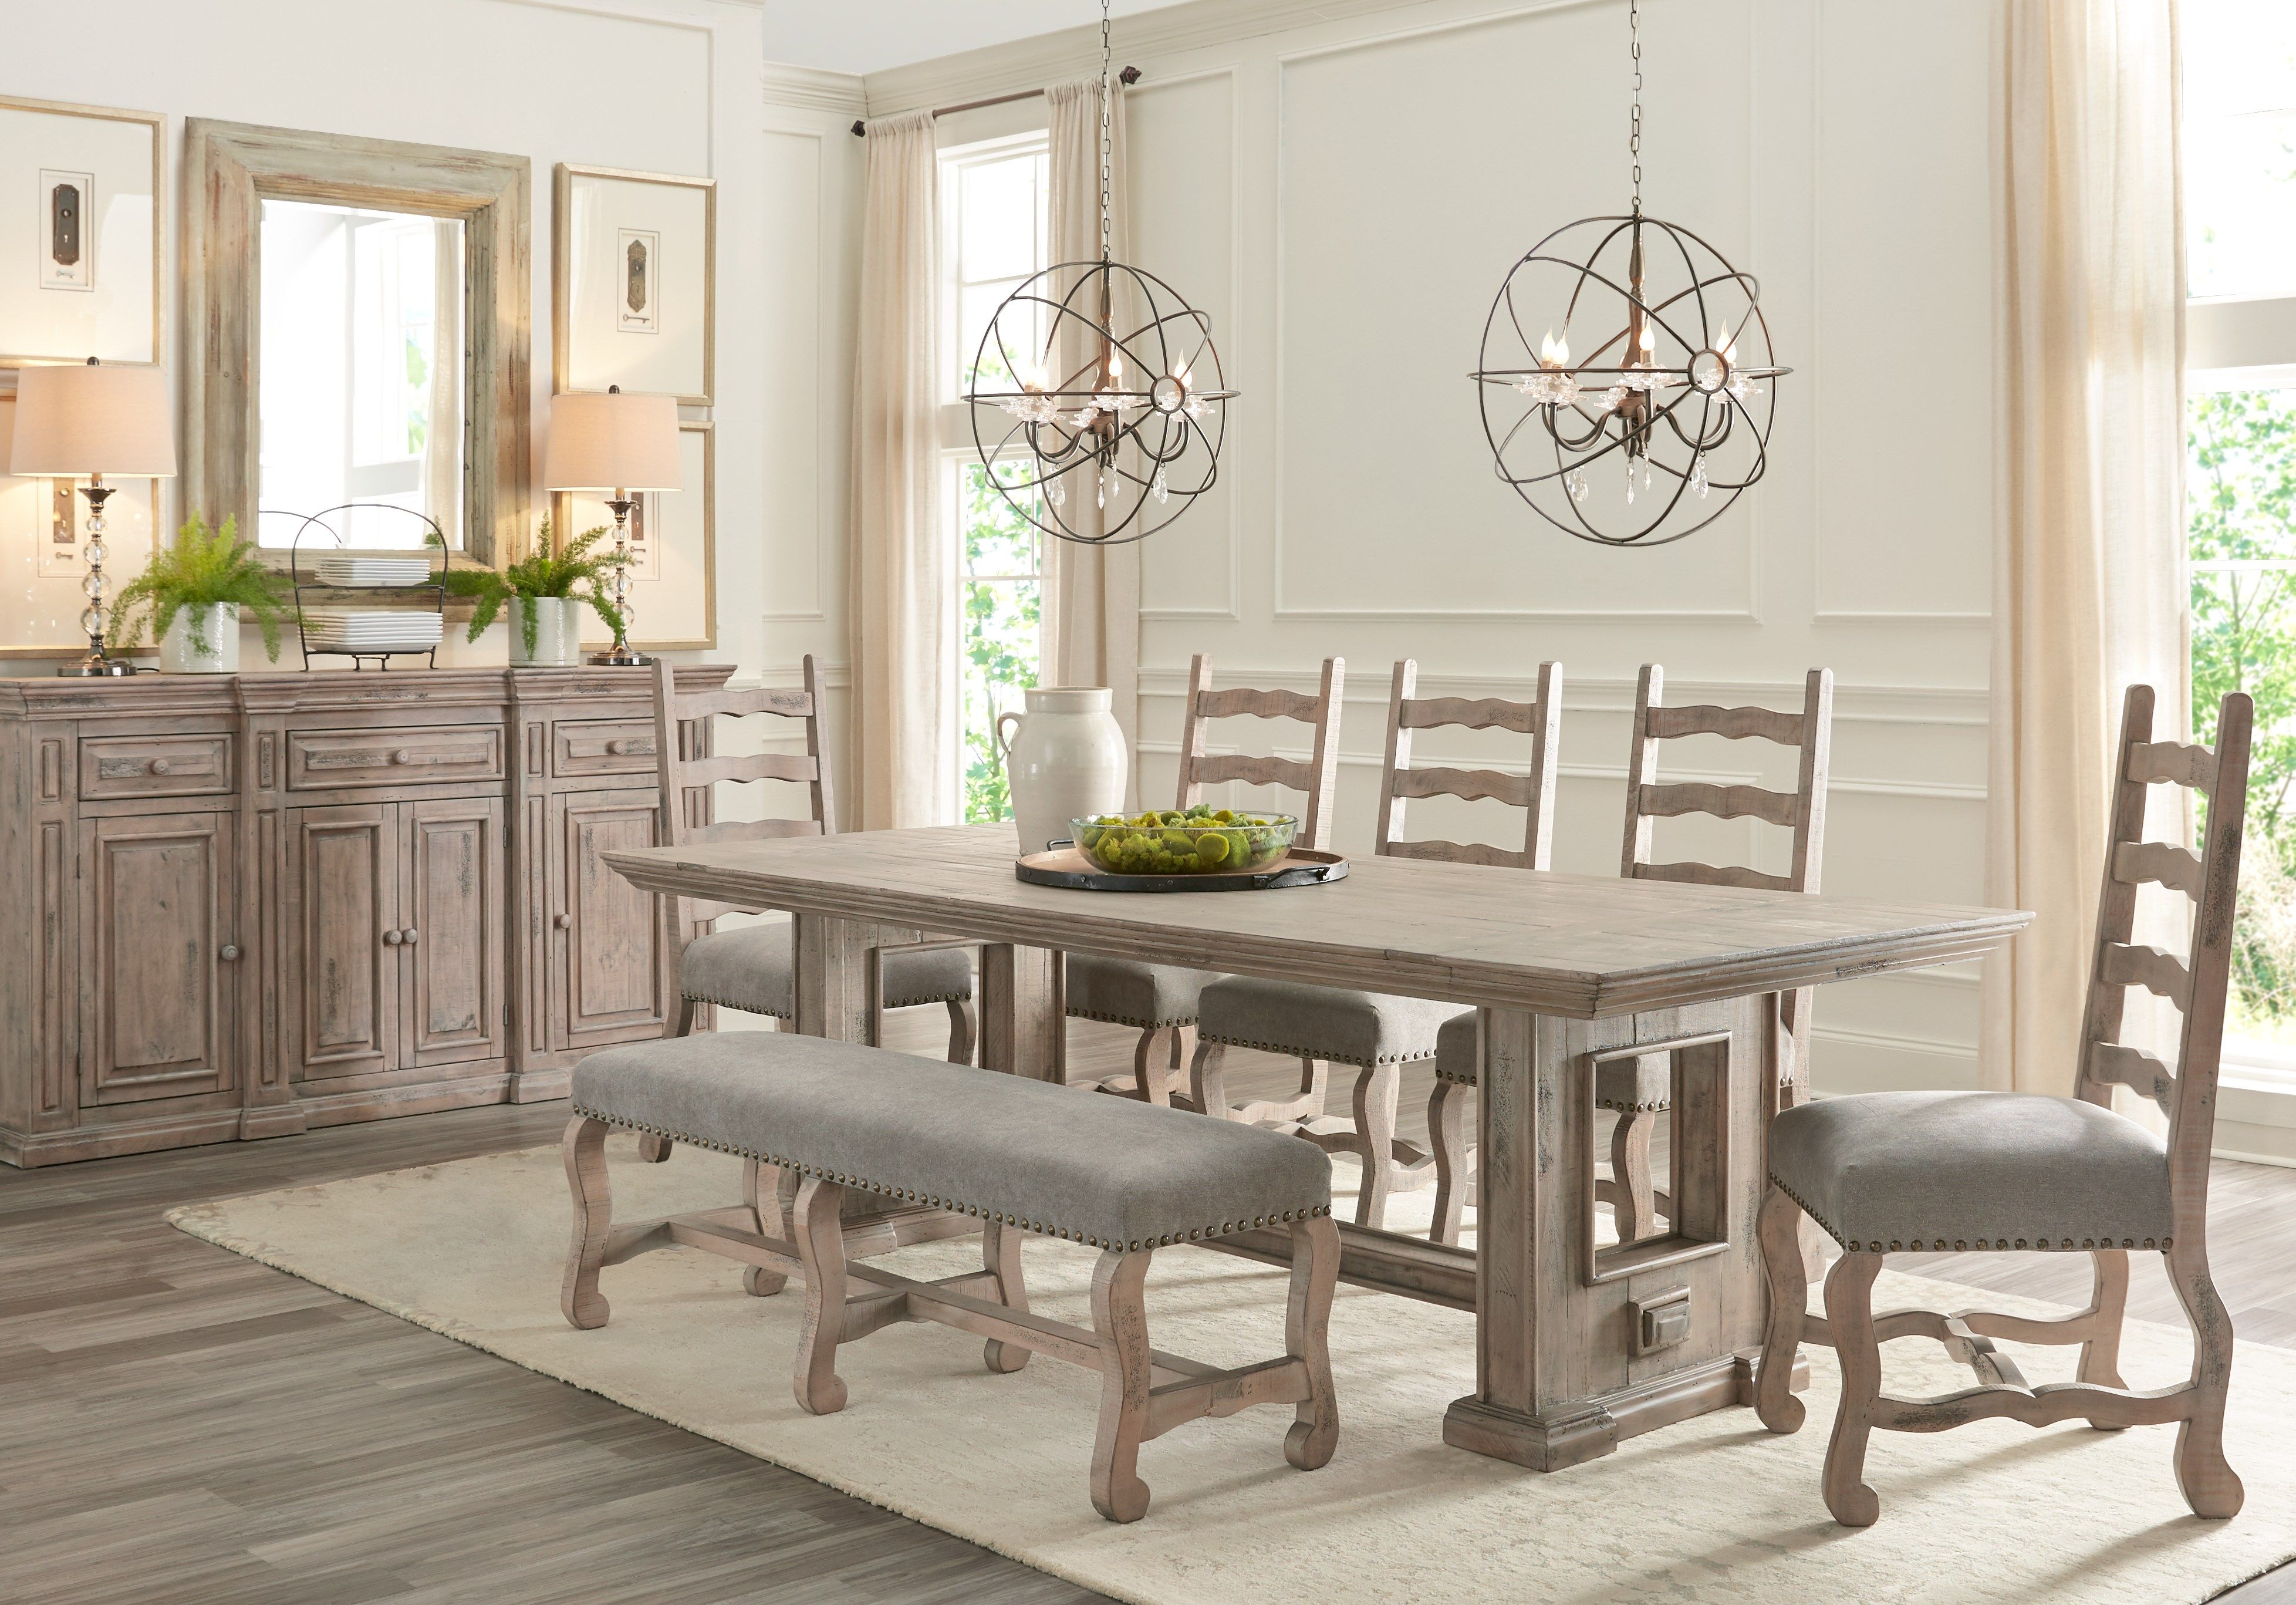 Pine Manor Brown 6 Pc Dining Room Antique Dining Room Table Dining Room Sets Dining Room Furniture Sets